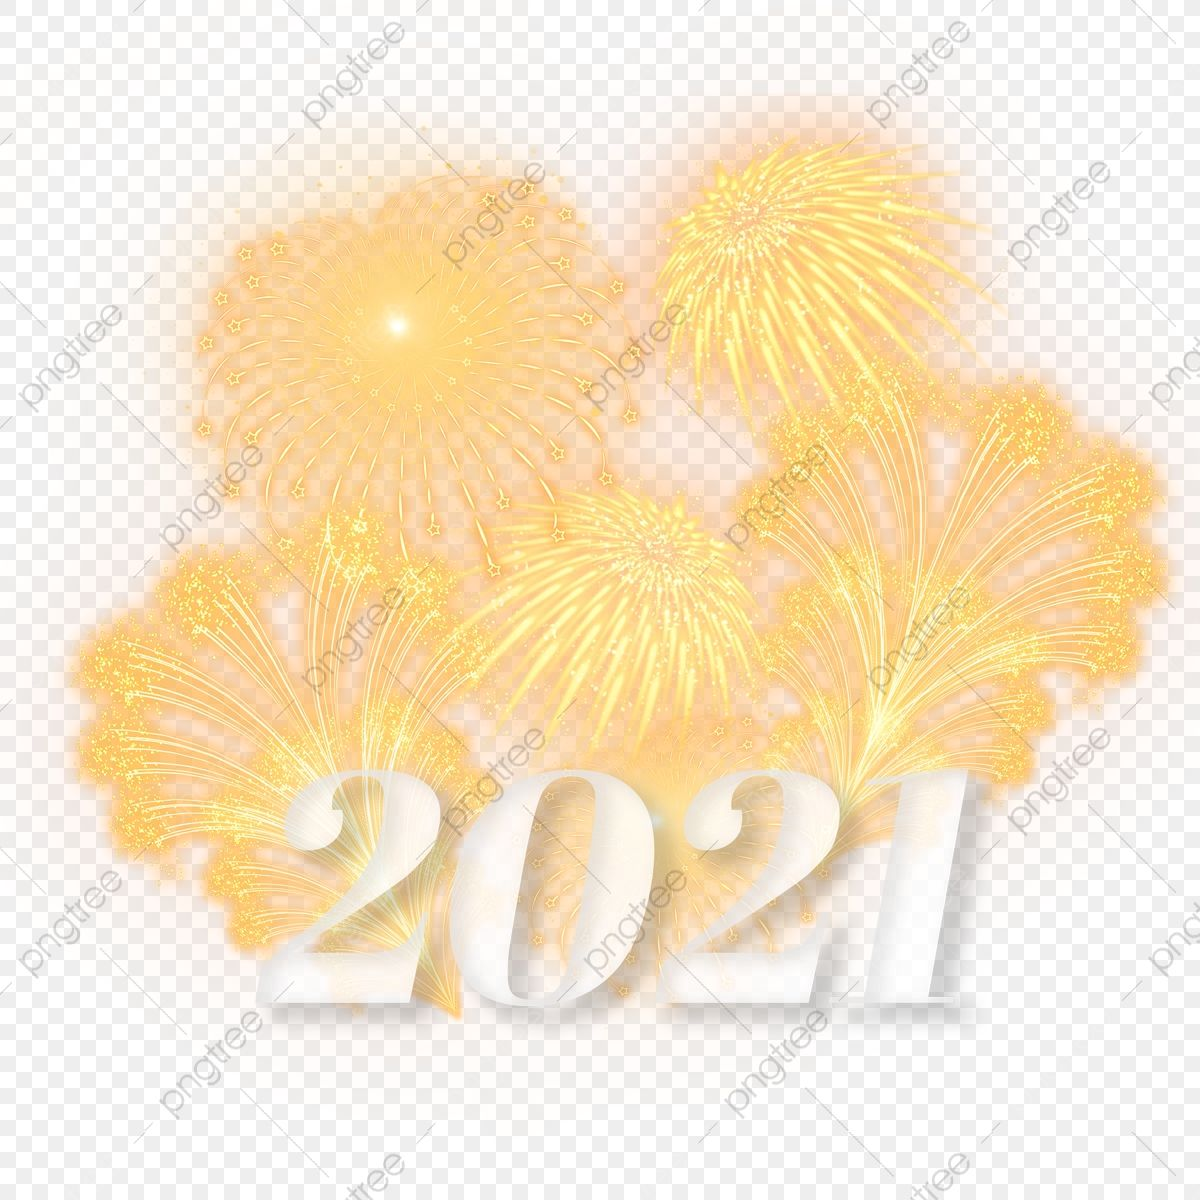 Golden Welcome 2021 Transparent Png Free Image By Rawpixel Com Ningzk V Happy New Year Png Happy New Year Fireworks Happy New Year Images